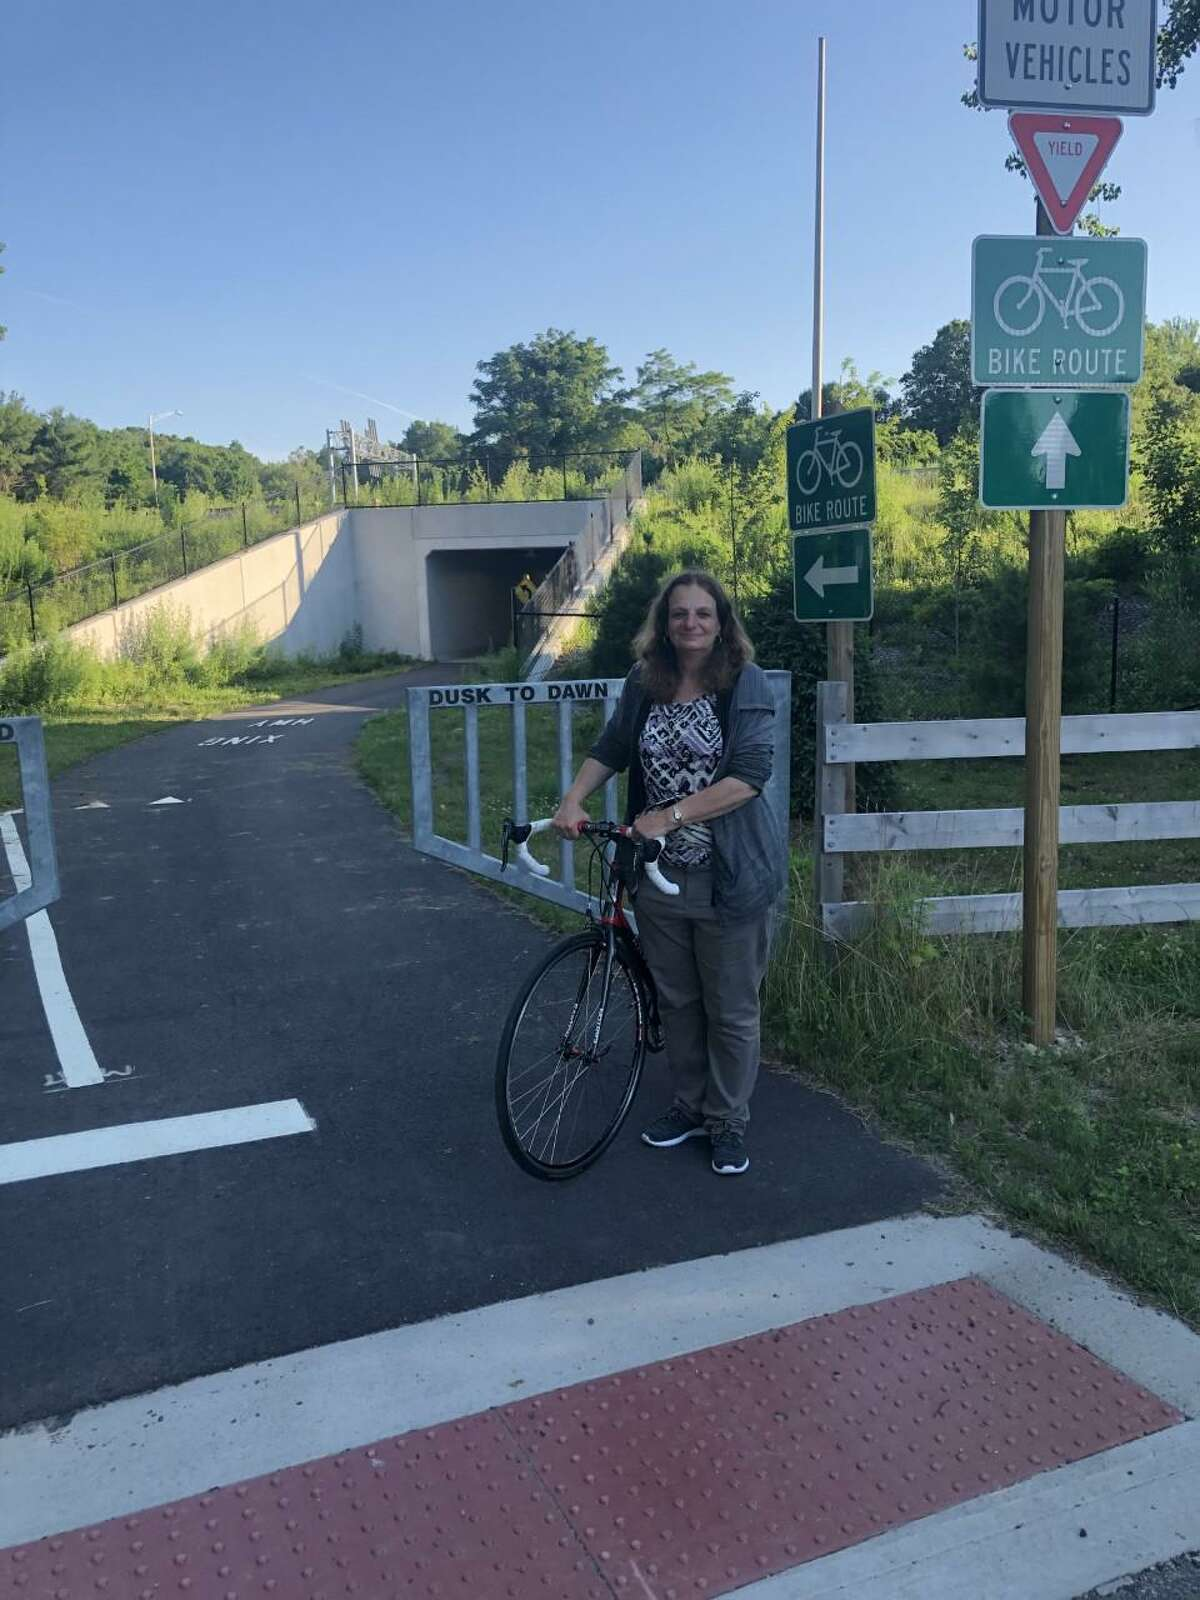 Sue A. DelBianco, will host a historical bike tour on the rail-trail starting at Twin Brooks Park to the end of Beardsley Park July 21.